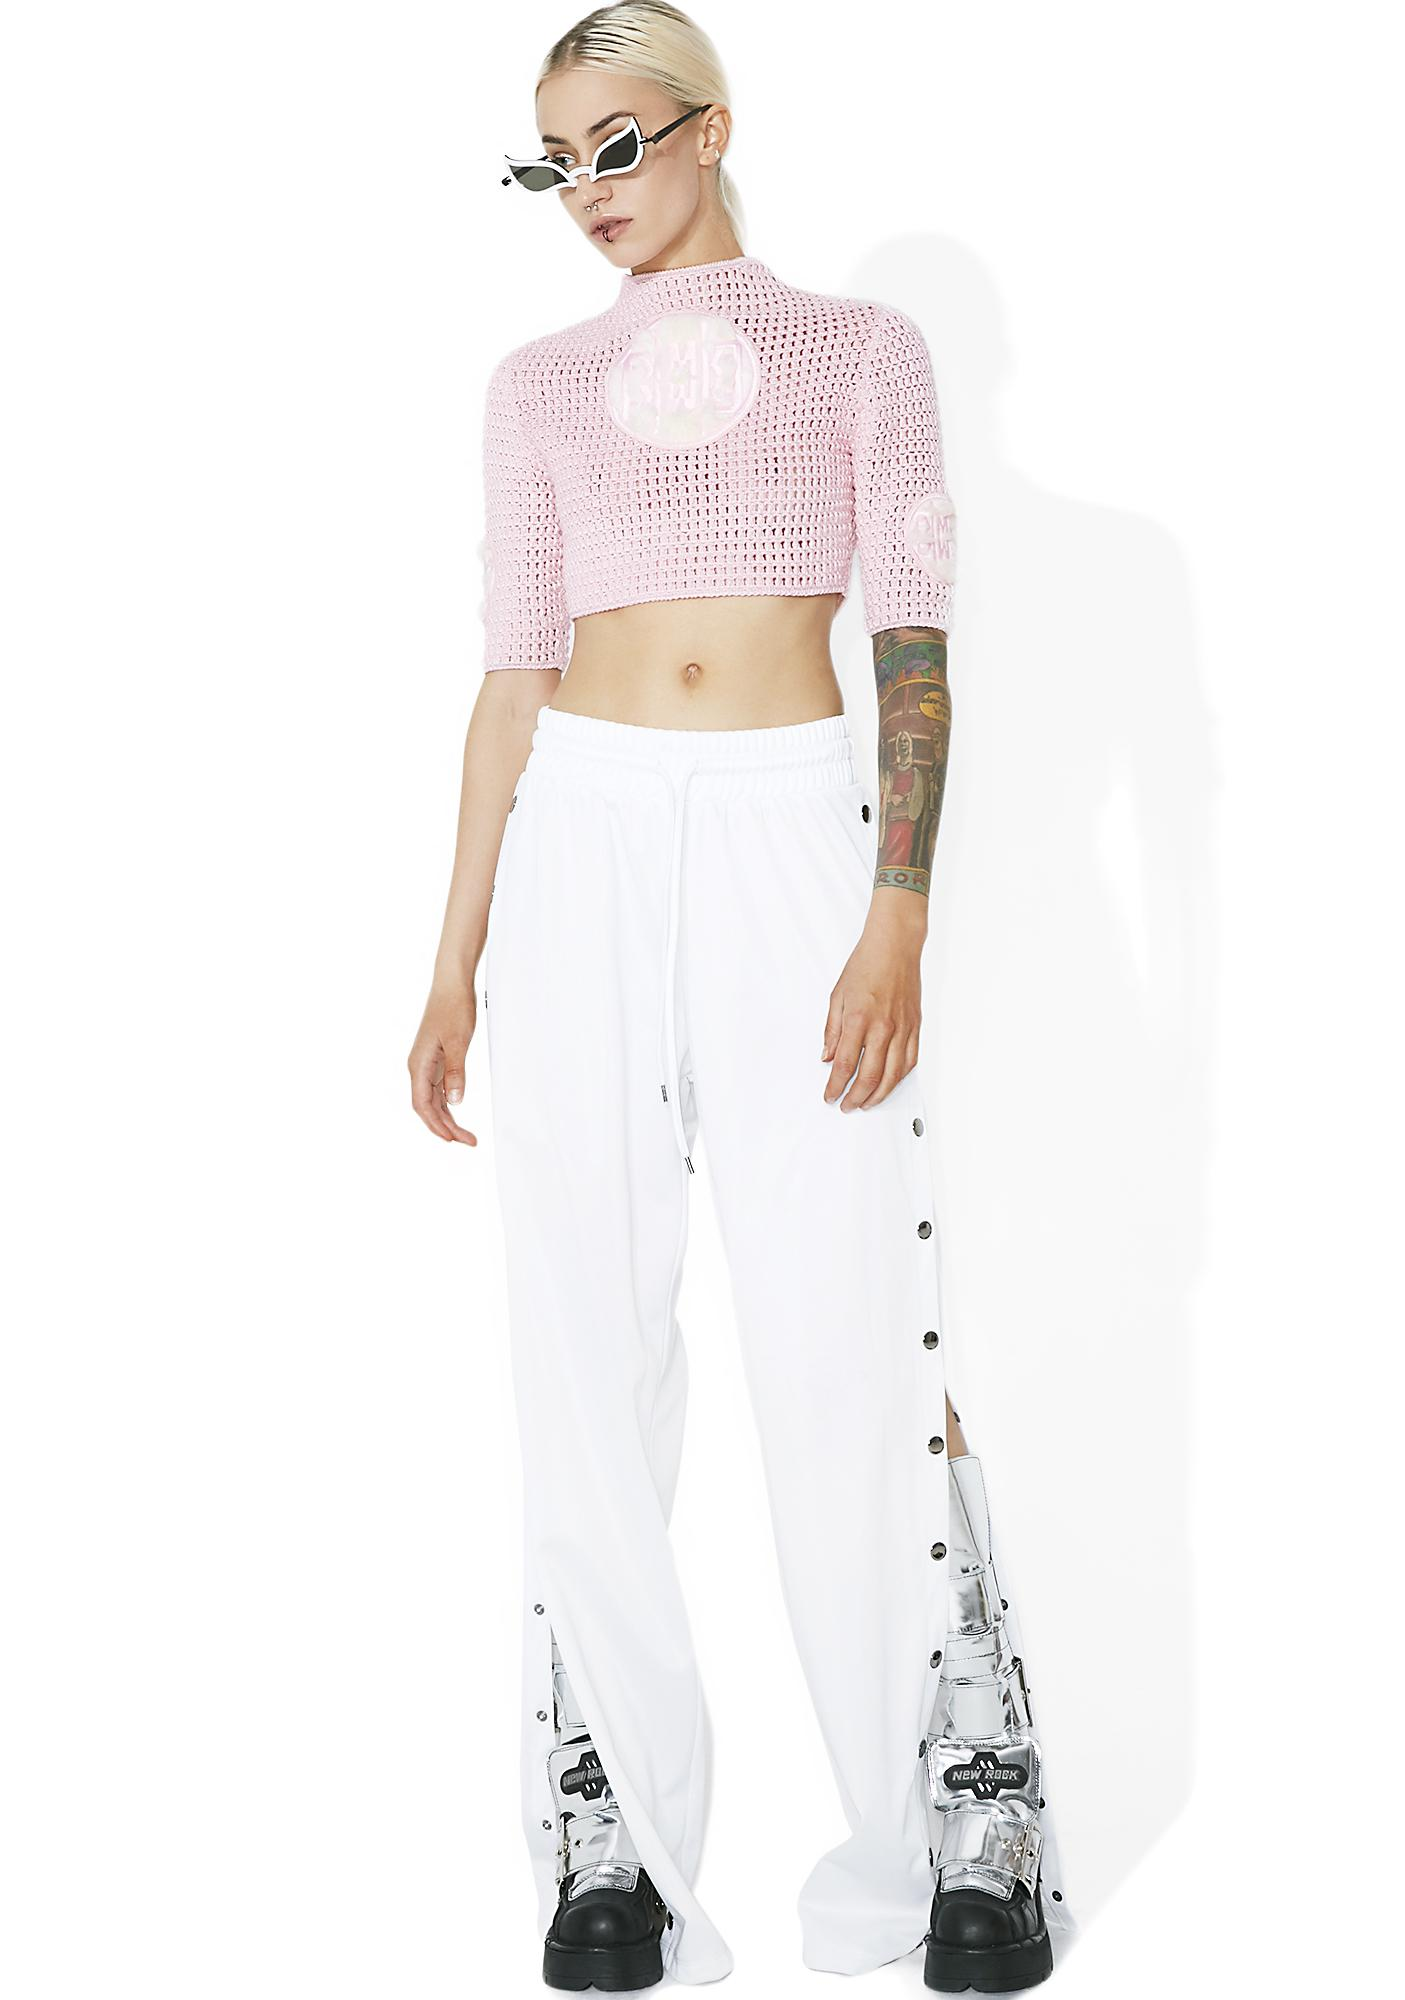 Maria ke Fisherman Crochet For A Good Time Crop Top